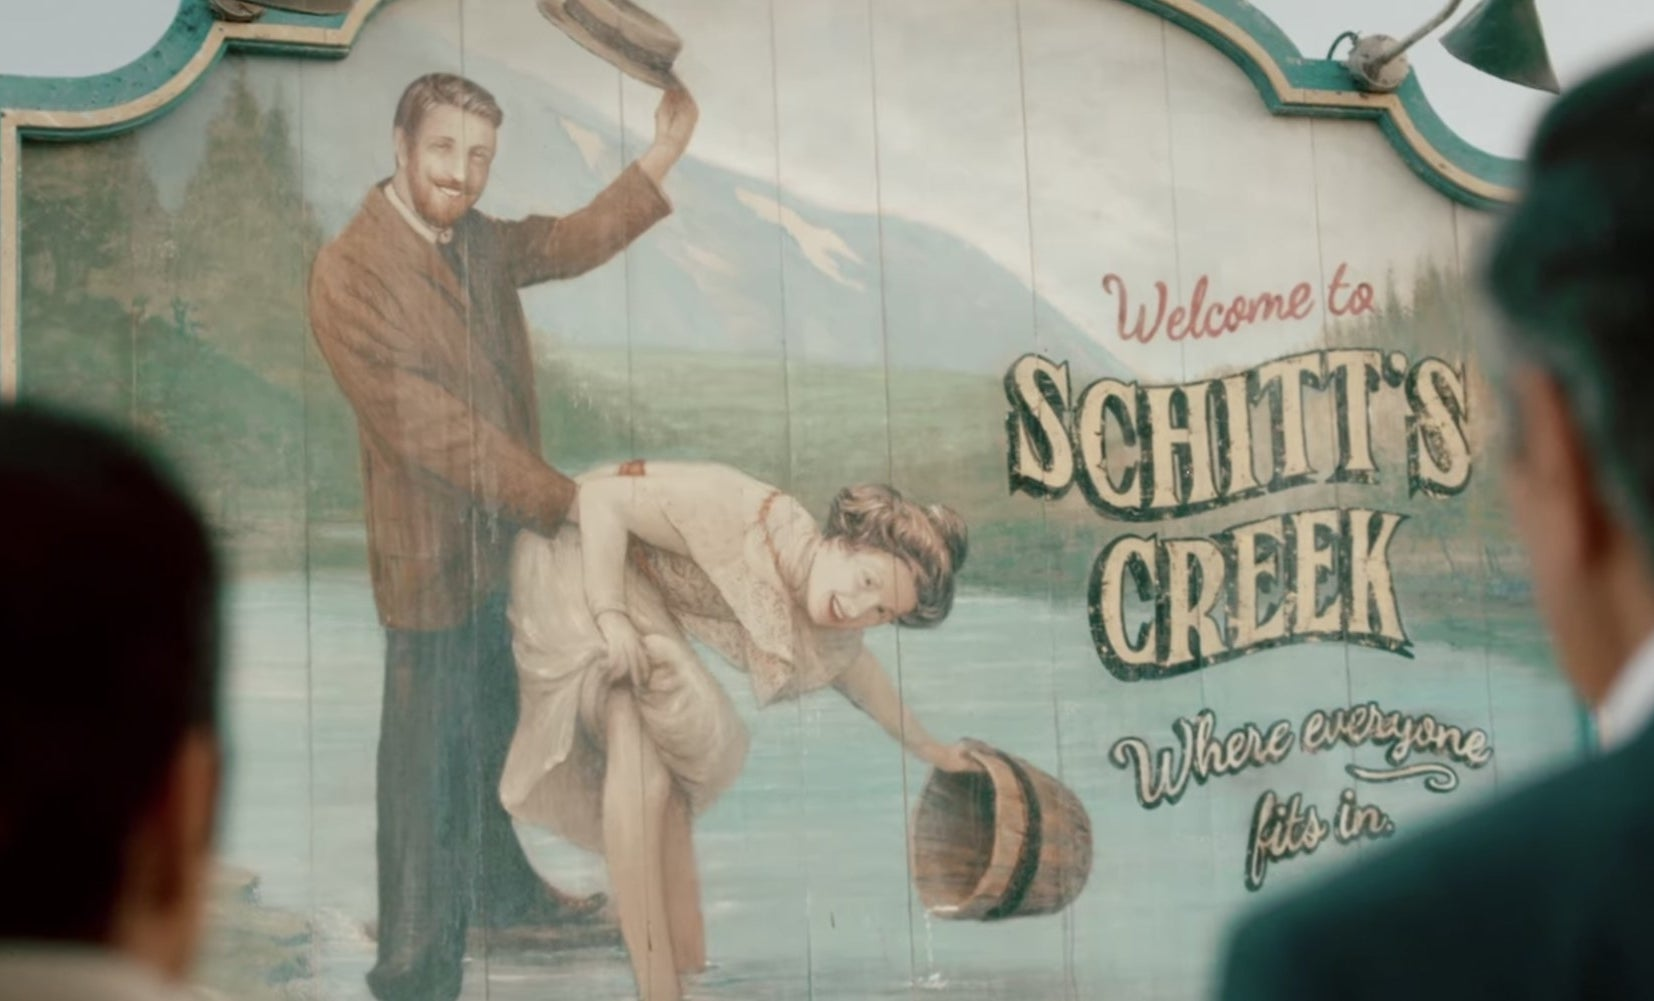 Schitt's creek town sign, man and woman suggestively in river